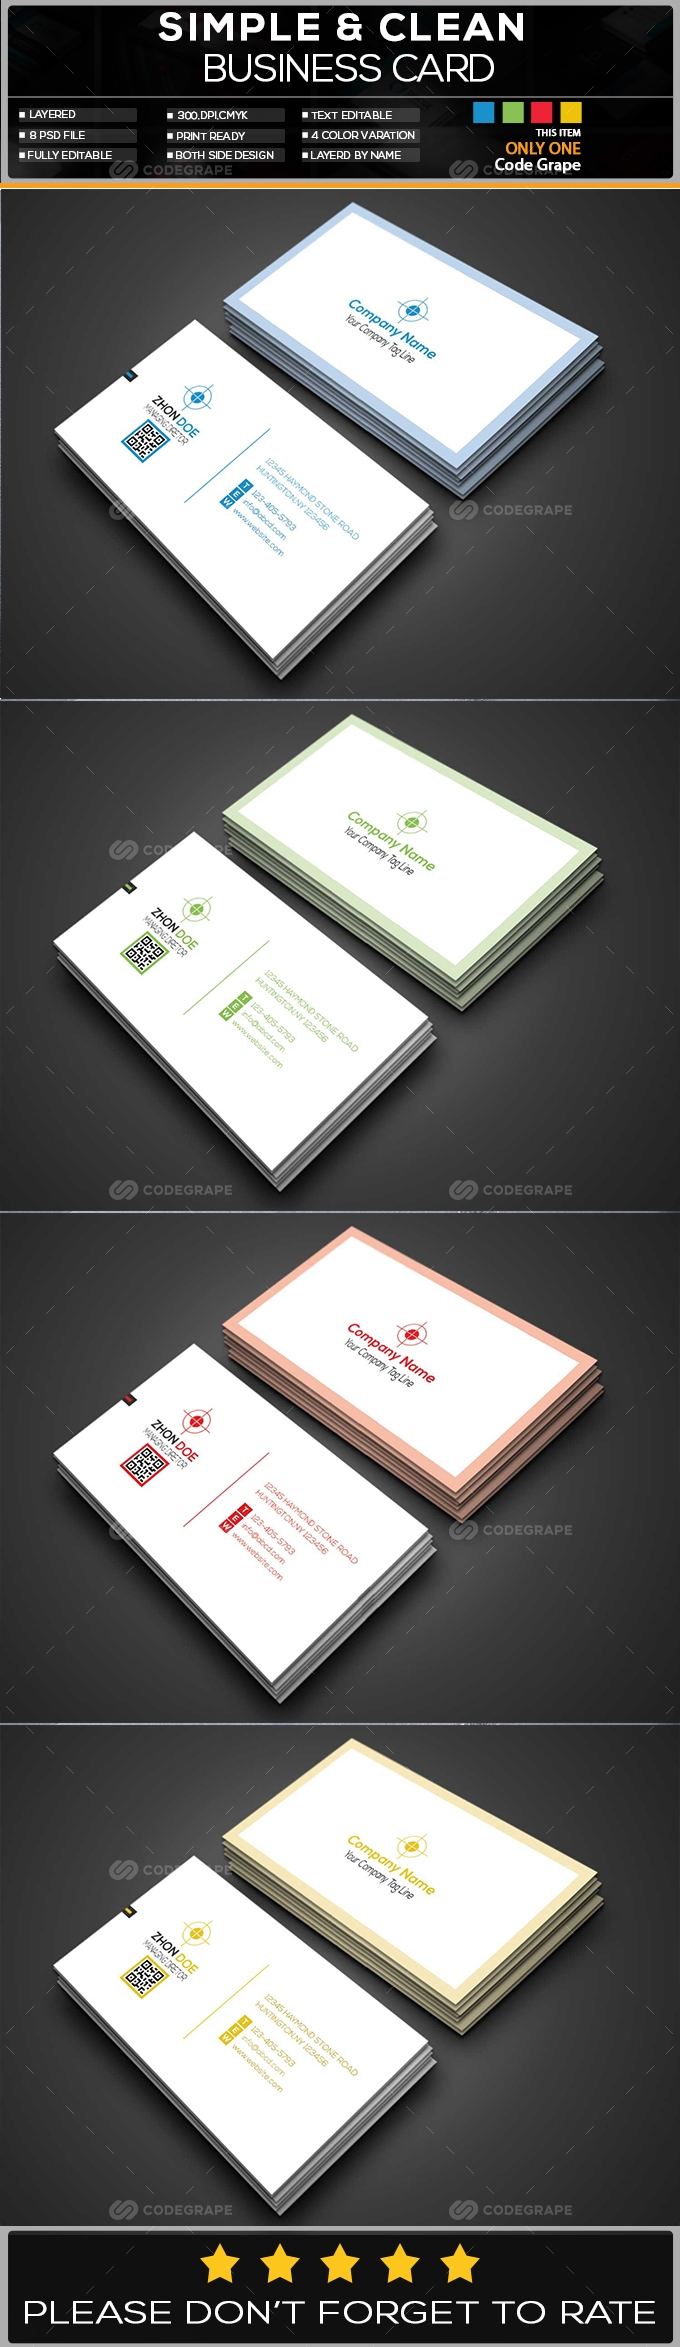 Corporate Business Card - 001